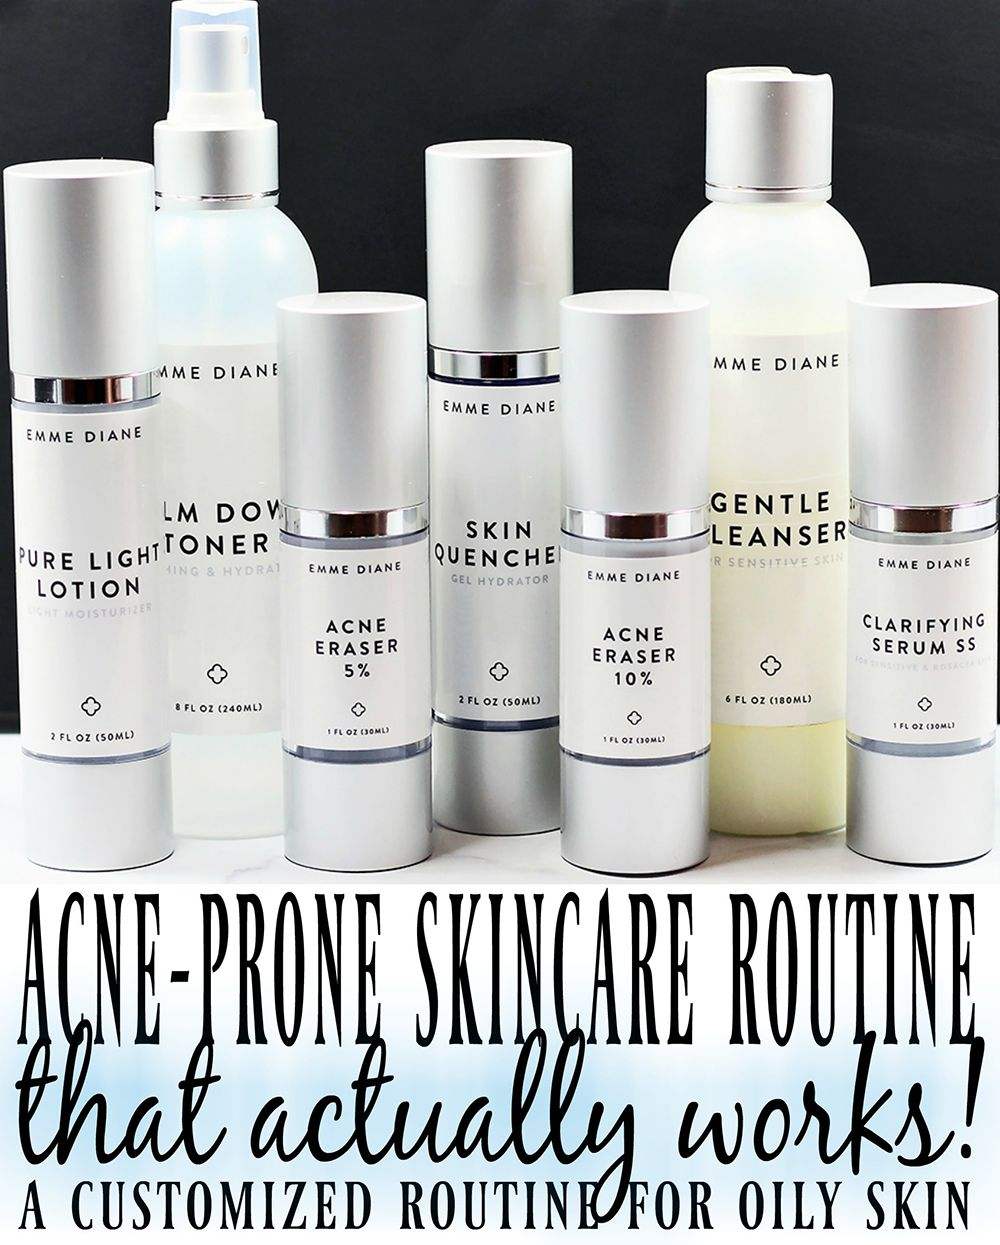 My Customized Skincare Routine for Oily, Acne Prone Skin